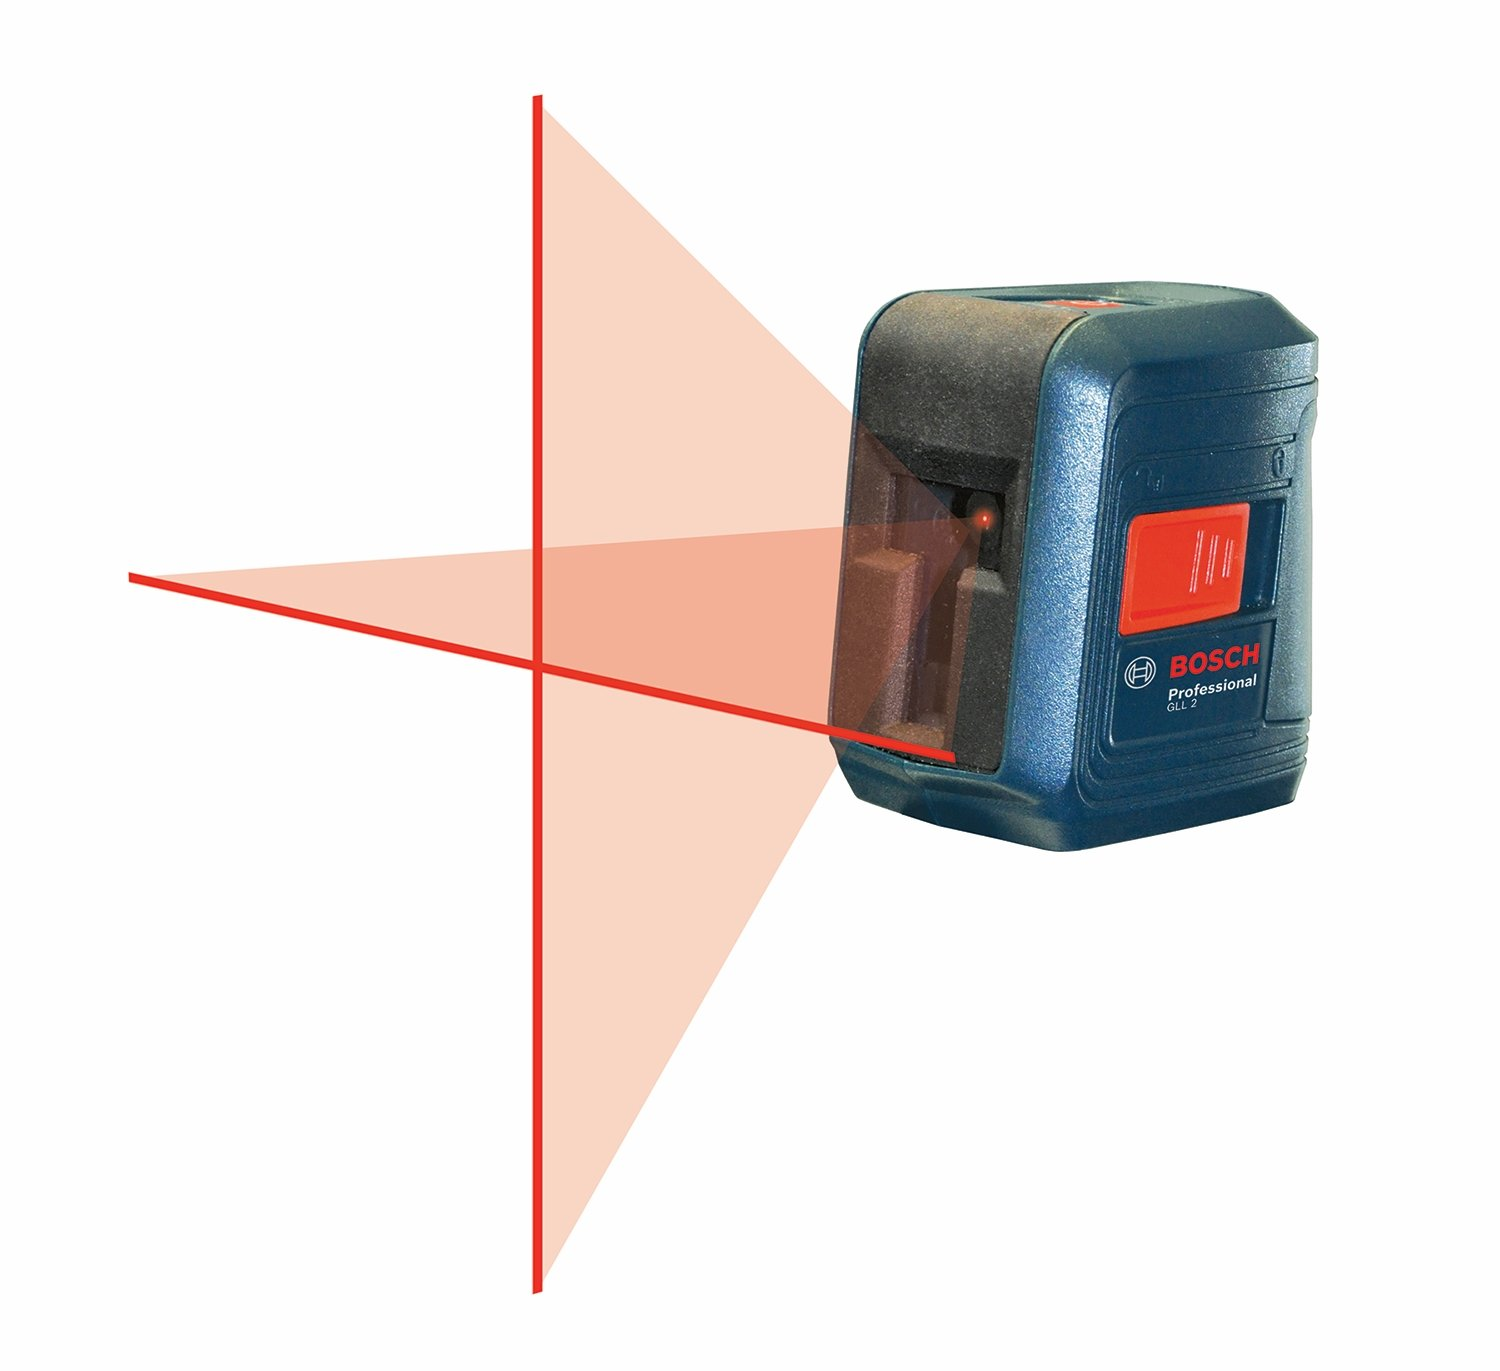 Bosch Gll 2 Self Leveling Cross Line Laser Level With